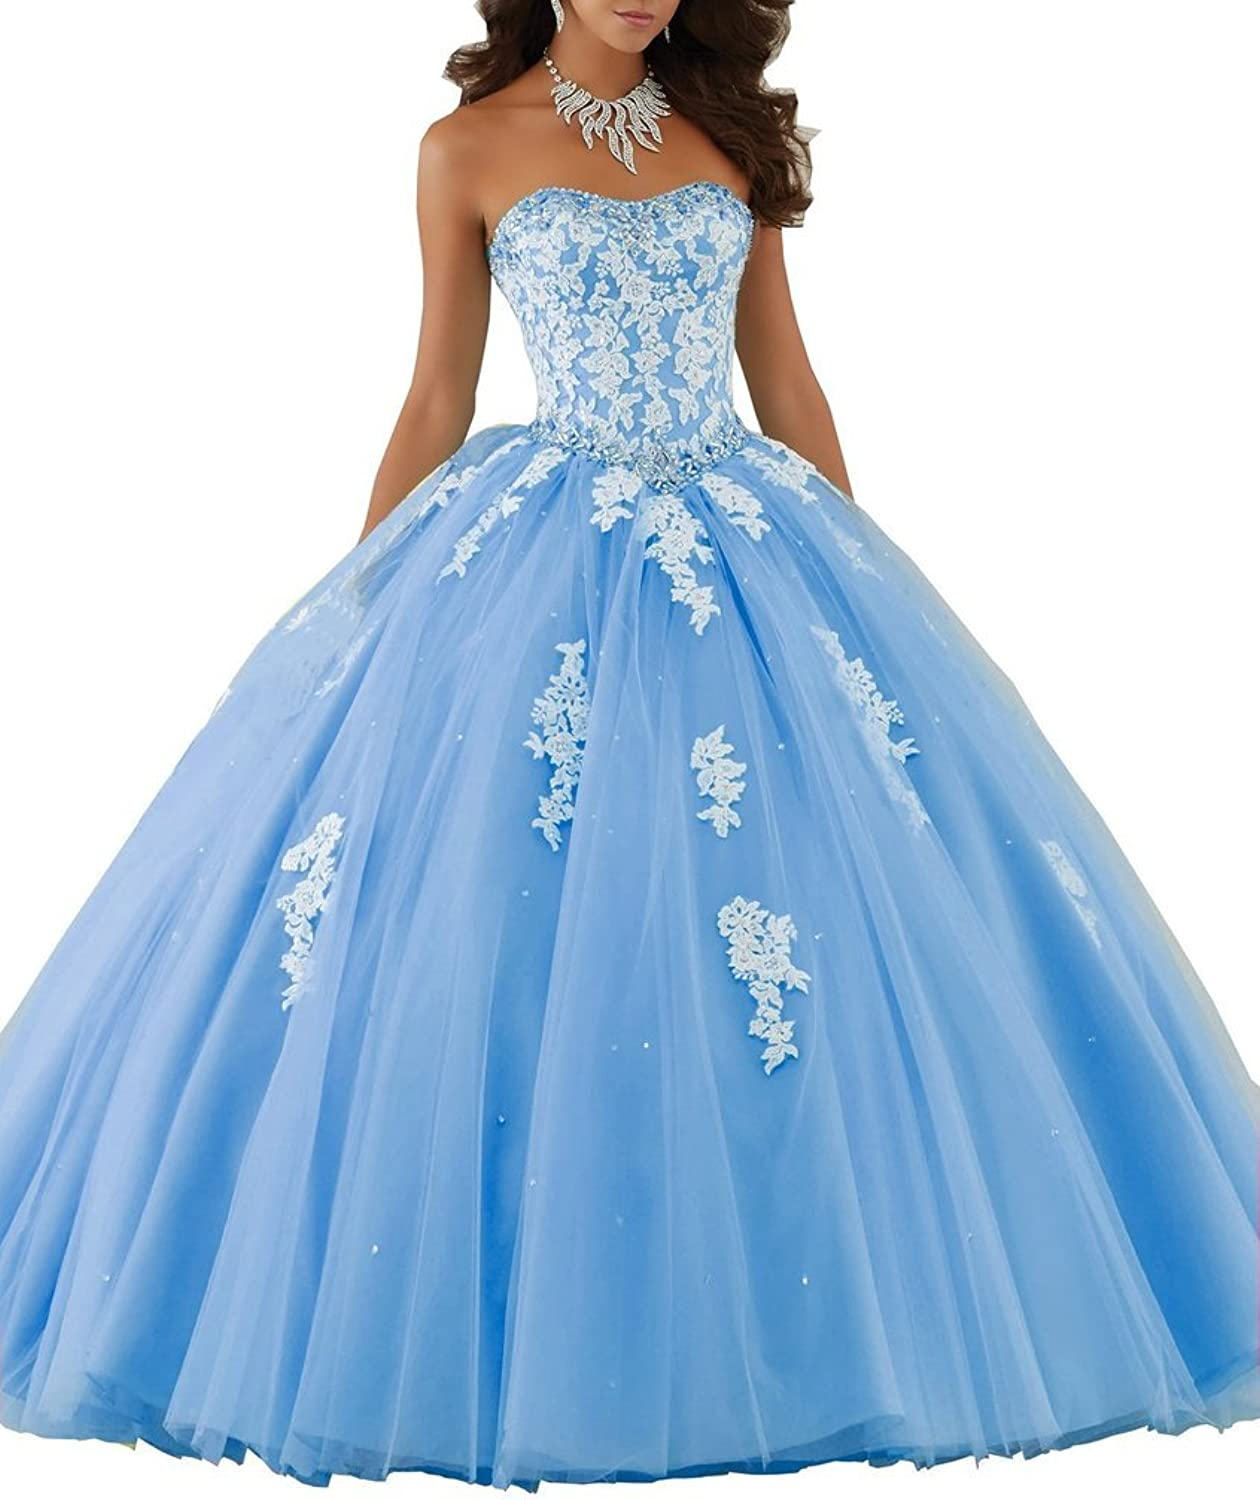 Zhu Li Ya Women's Applique Tulle Beading Lace Quinceanera Dresses Prom Gown